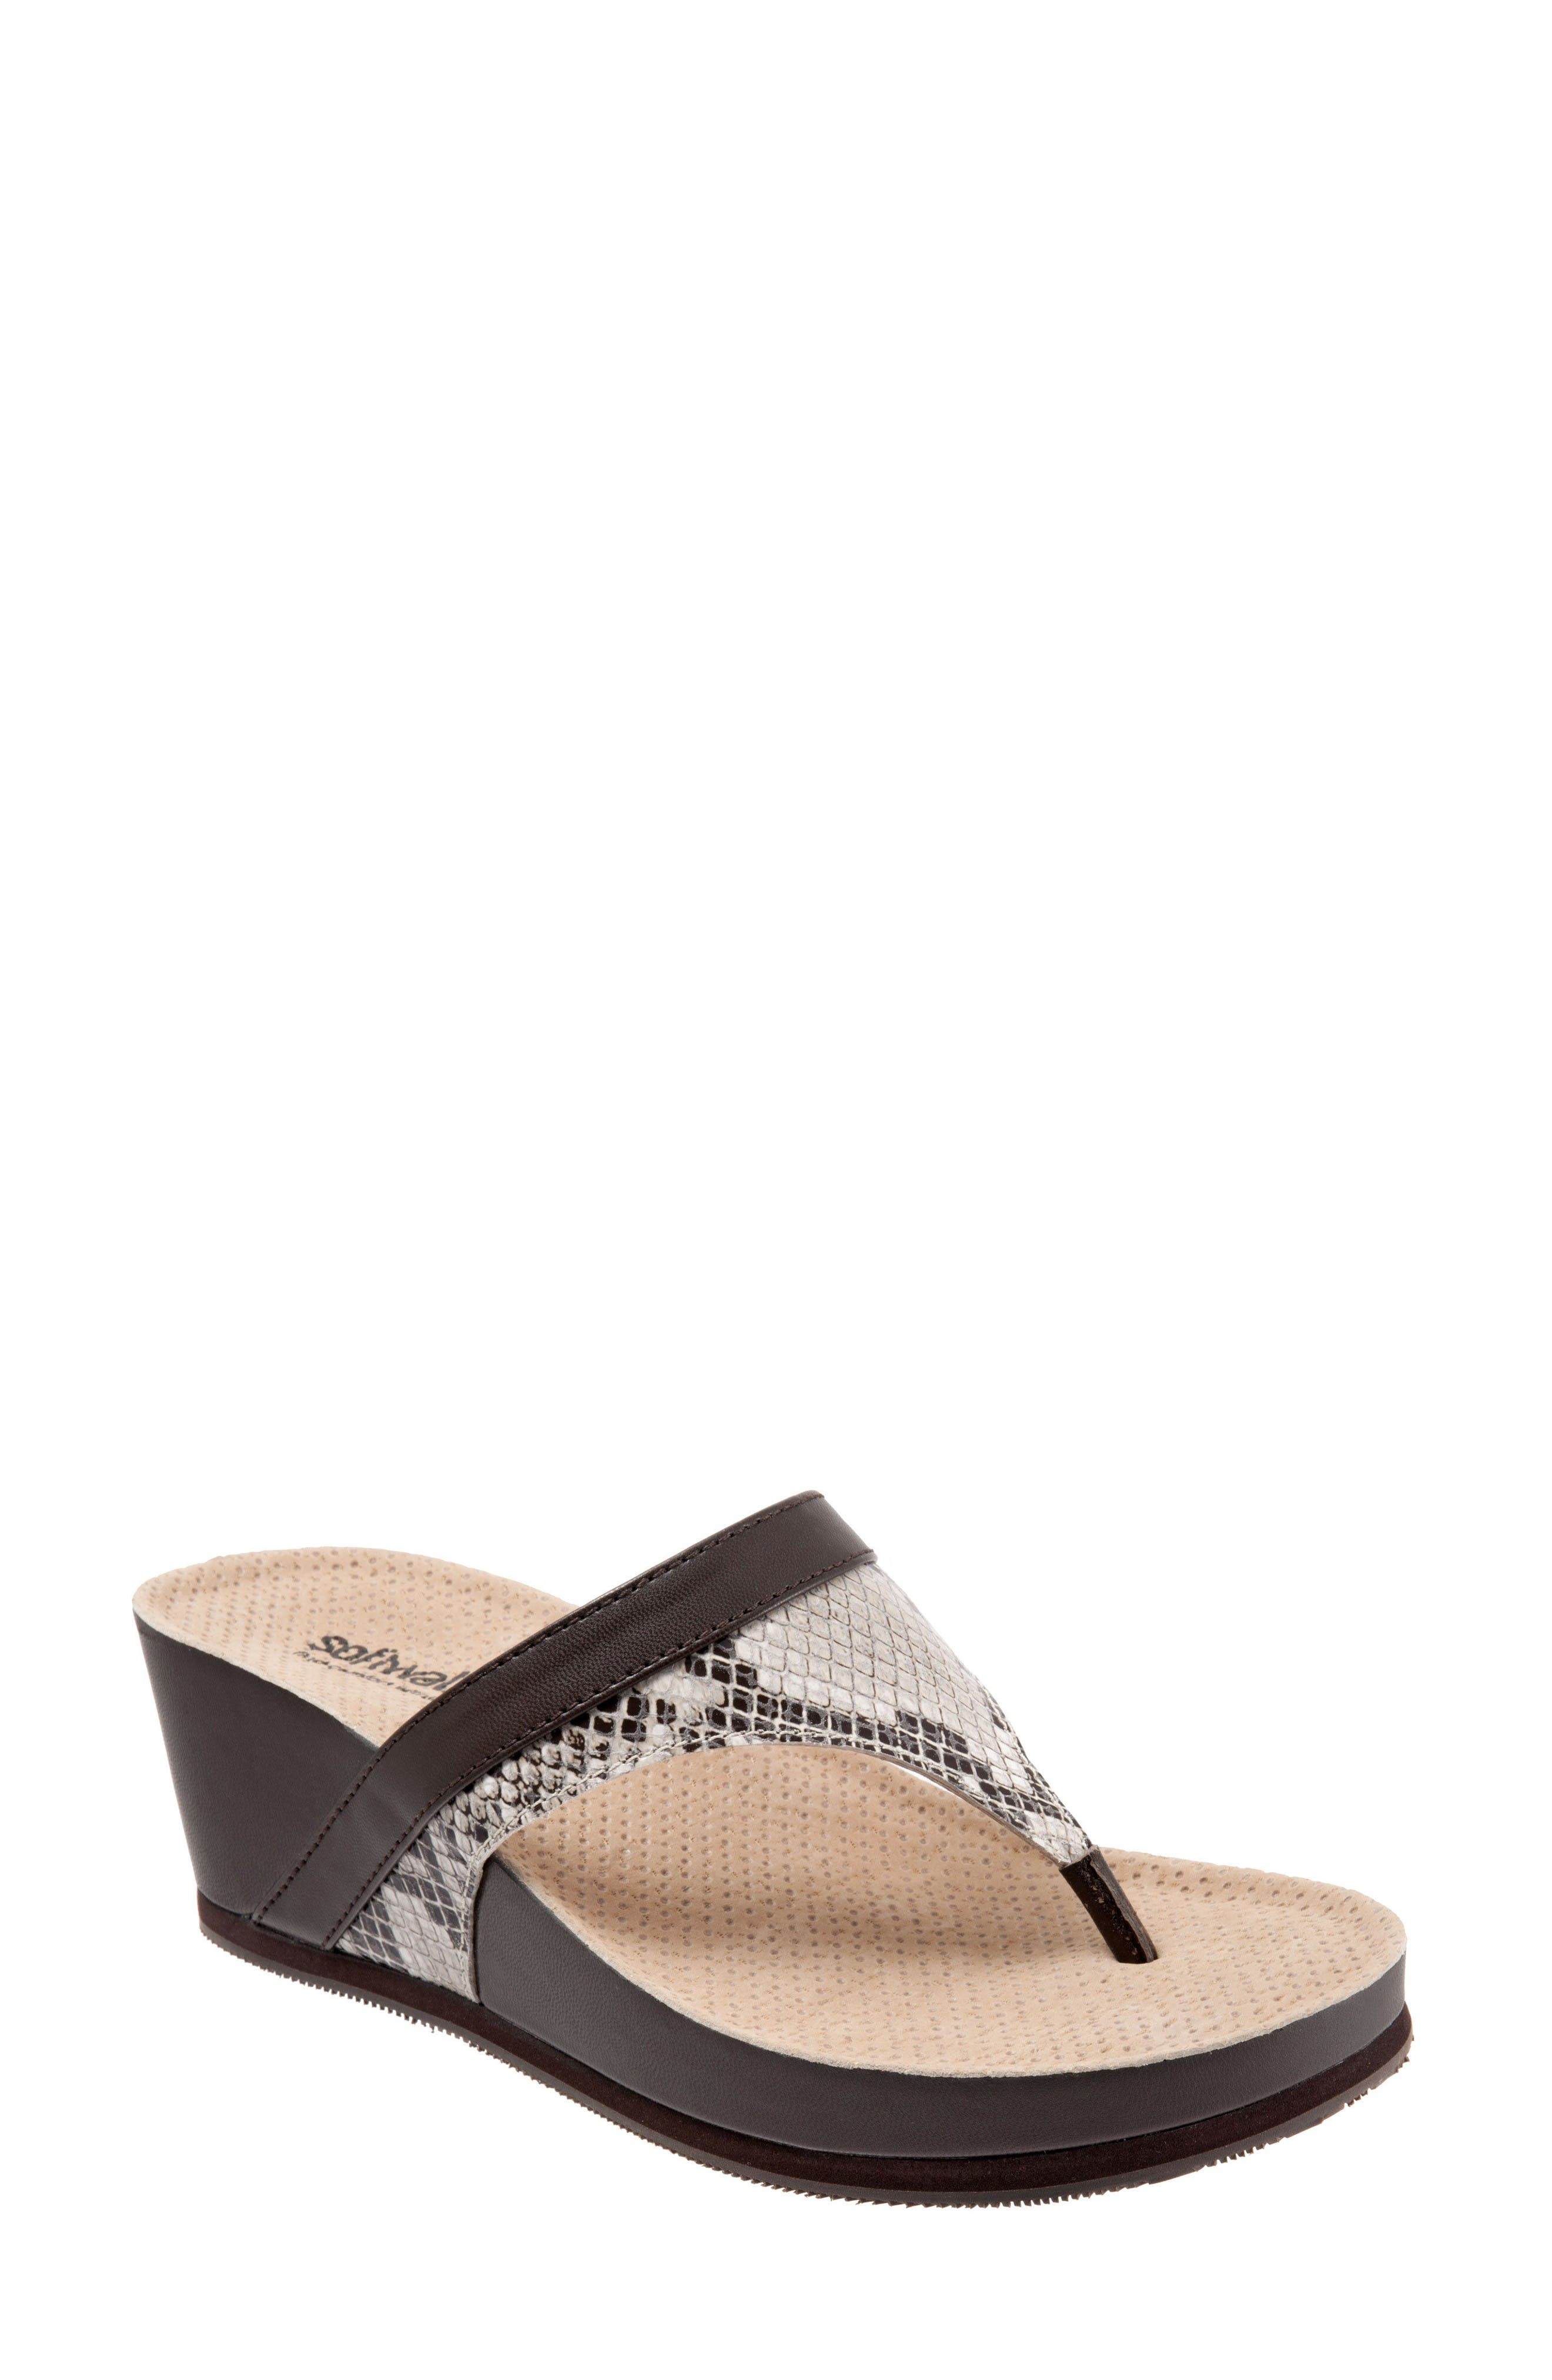 Heights Wedge Slide Sandal,                             Main thumbnail 1, color,                             Brown Leather